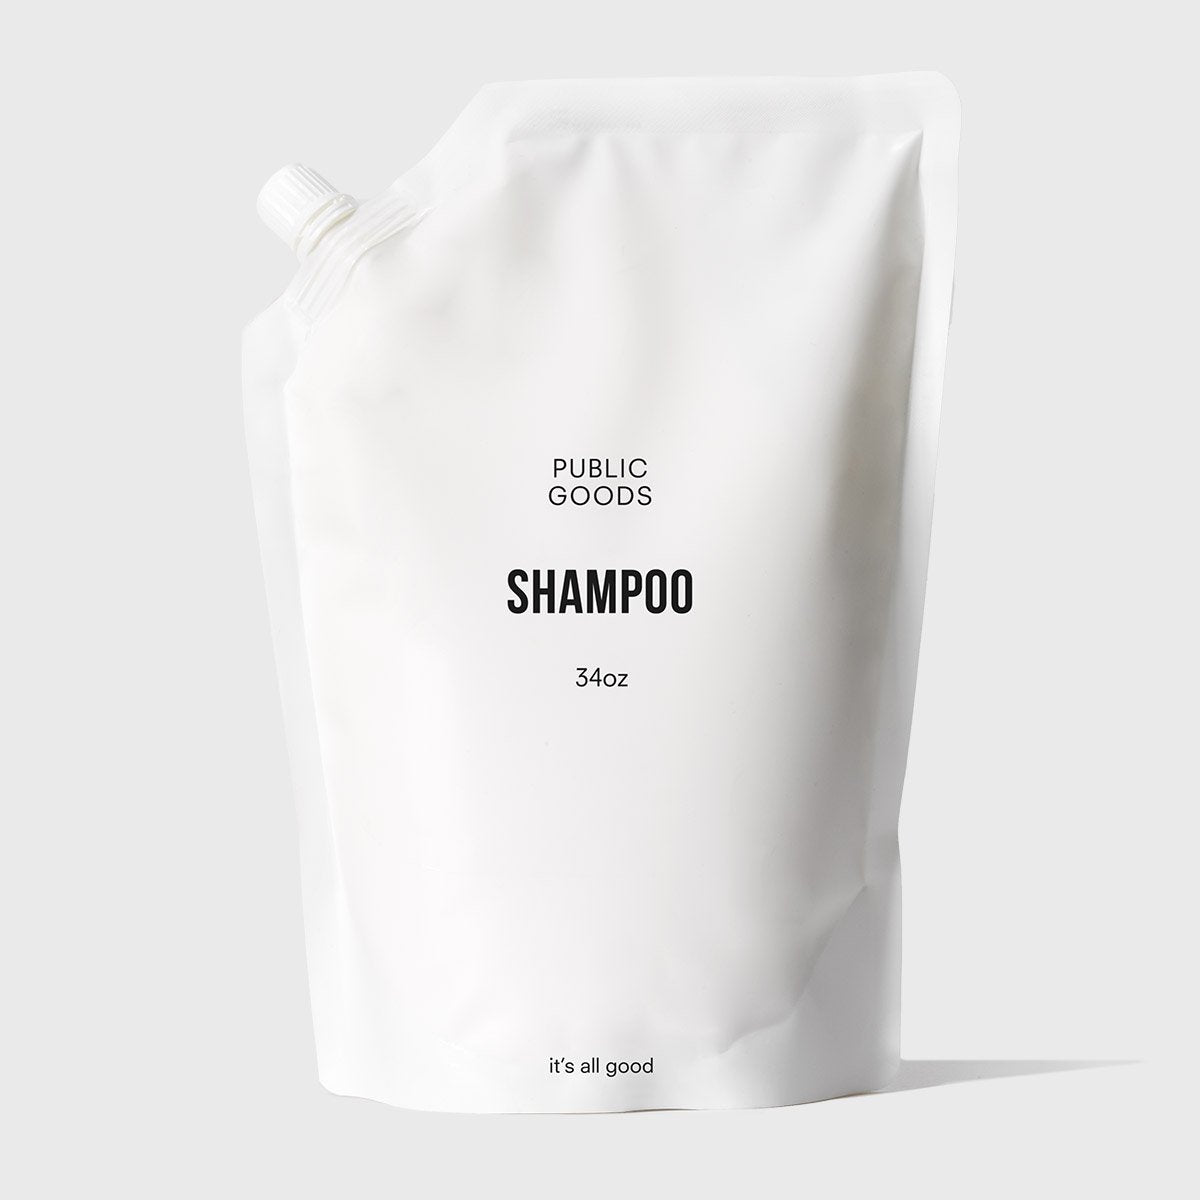 Shampoo Refill 34oz (Case of 6)